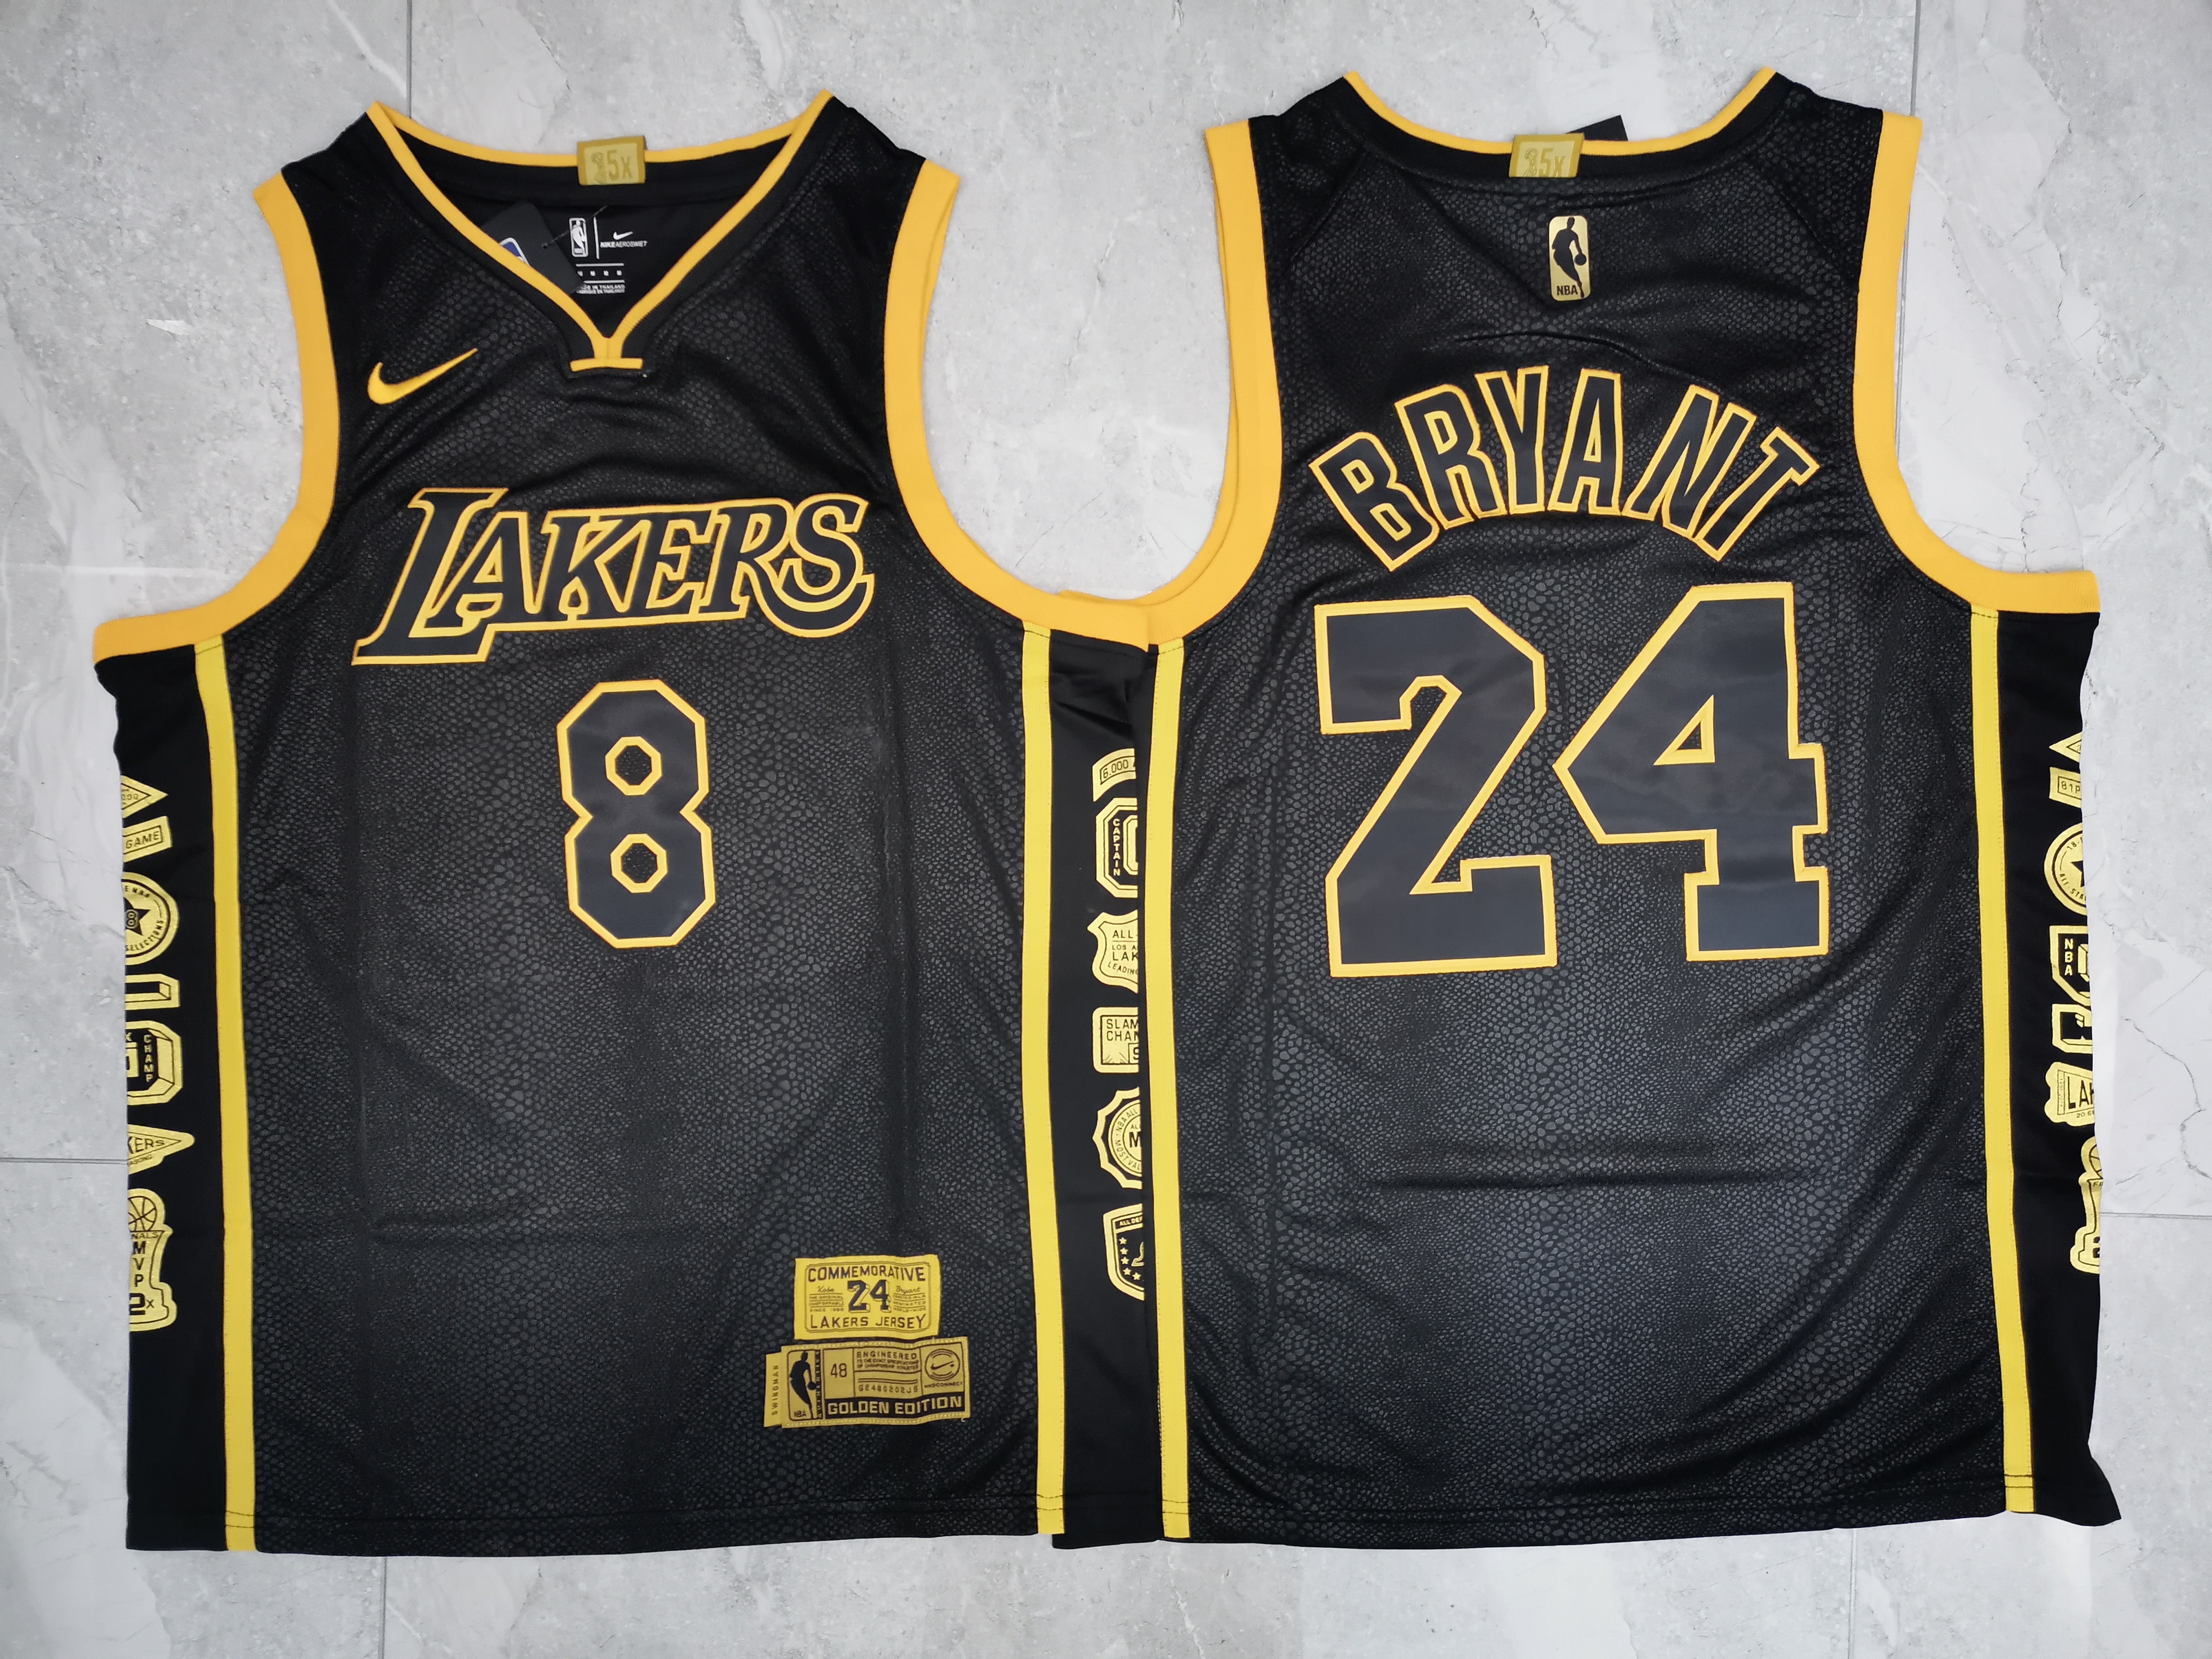 Lakers 24 Kobe Bryant Black Retirement Commemorative Nike Swingman Jersey